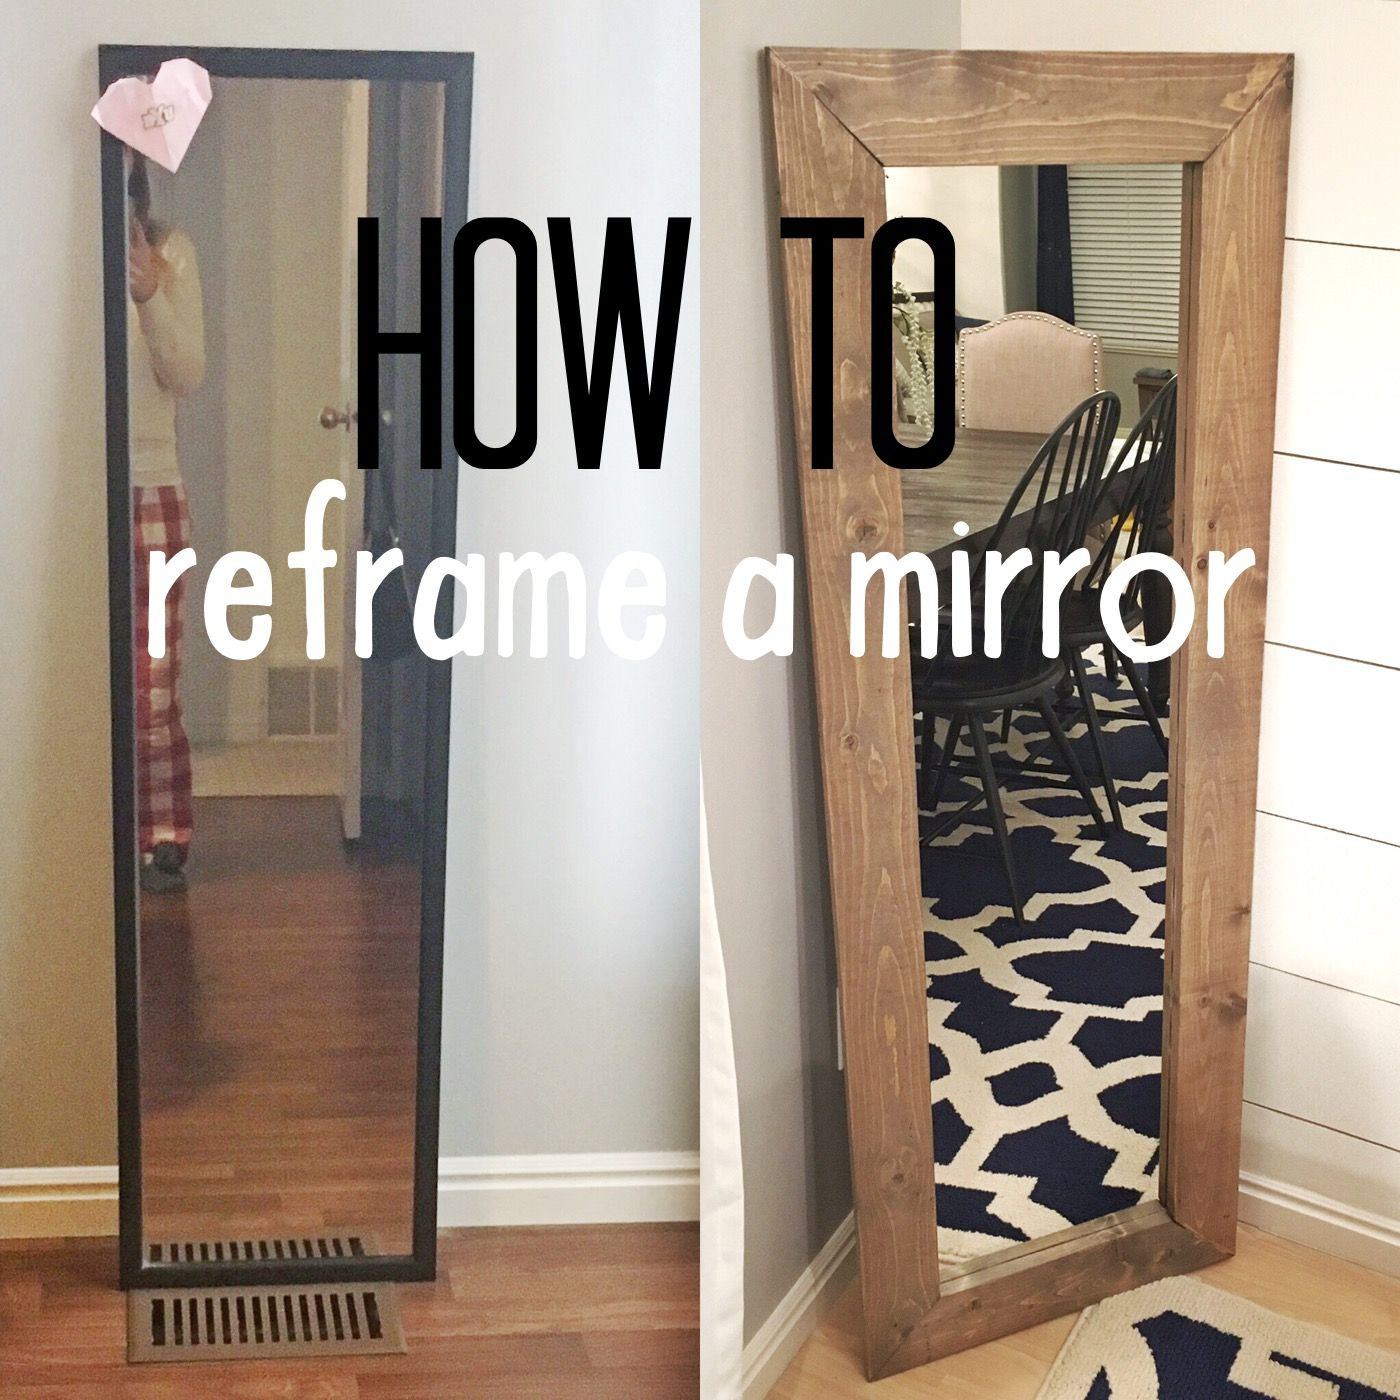 Family Living Room Design Ideas That Will Keep Everyone Happy: How To Reframe A Mirror